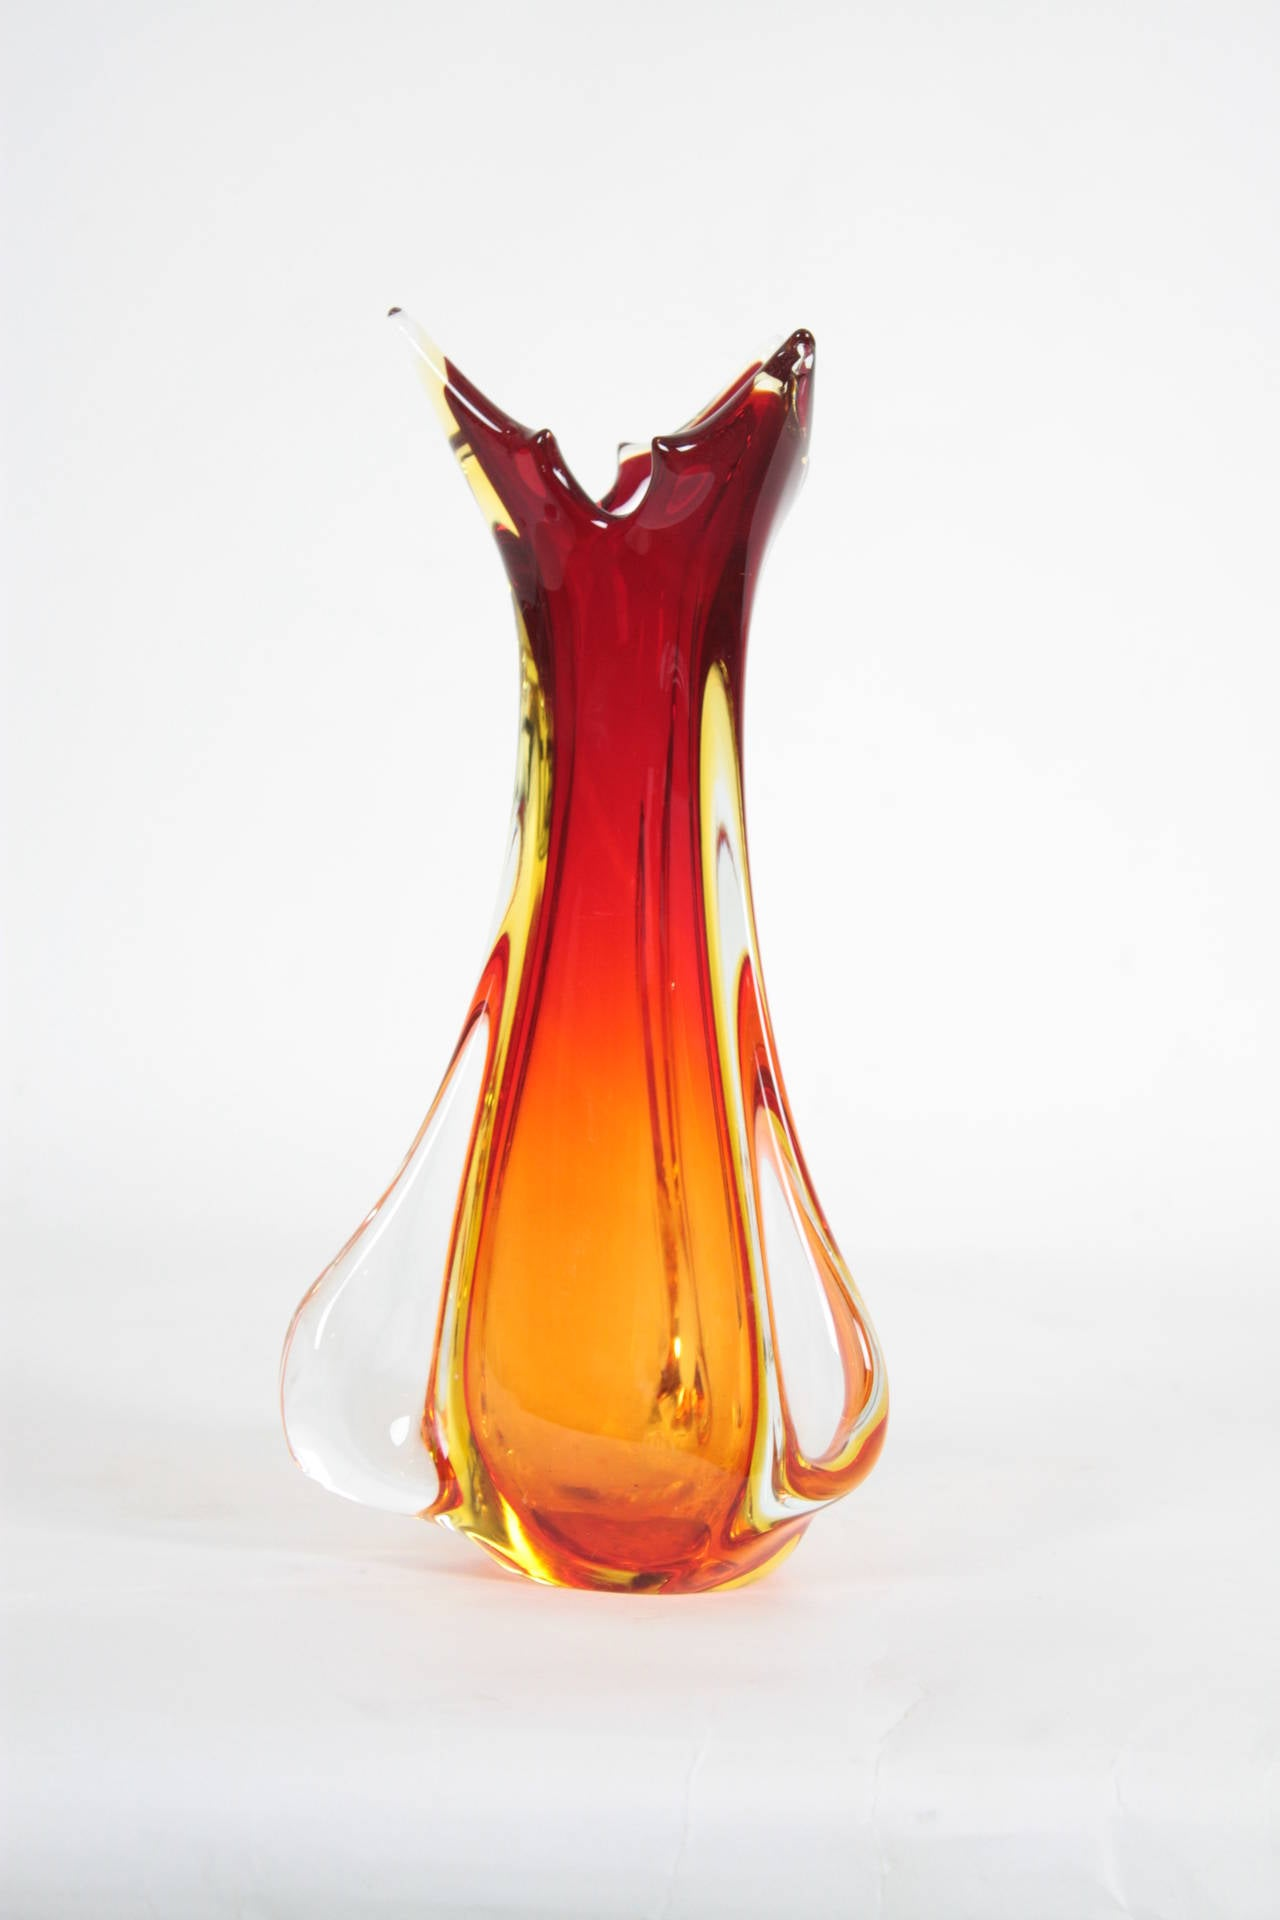 Archimede seguso red orange and yellow murano glass vase at 1stdibs mid century modern archimede seguso red orange and yellow murano glass vase for sale reviewsmspy